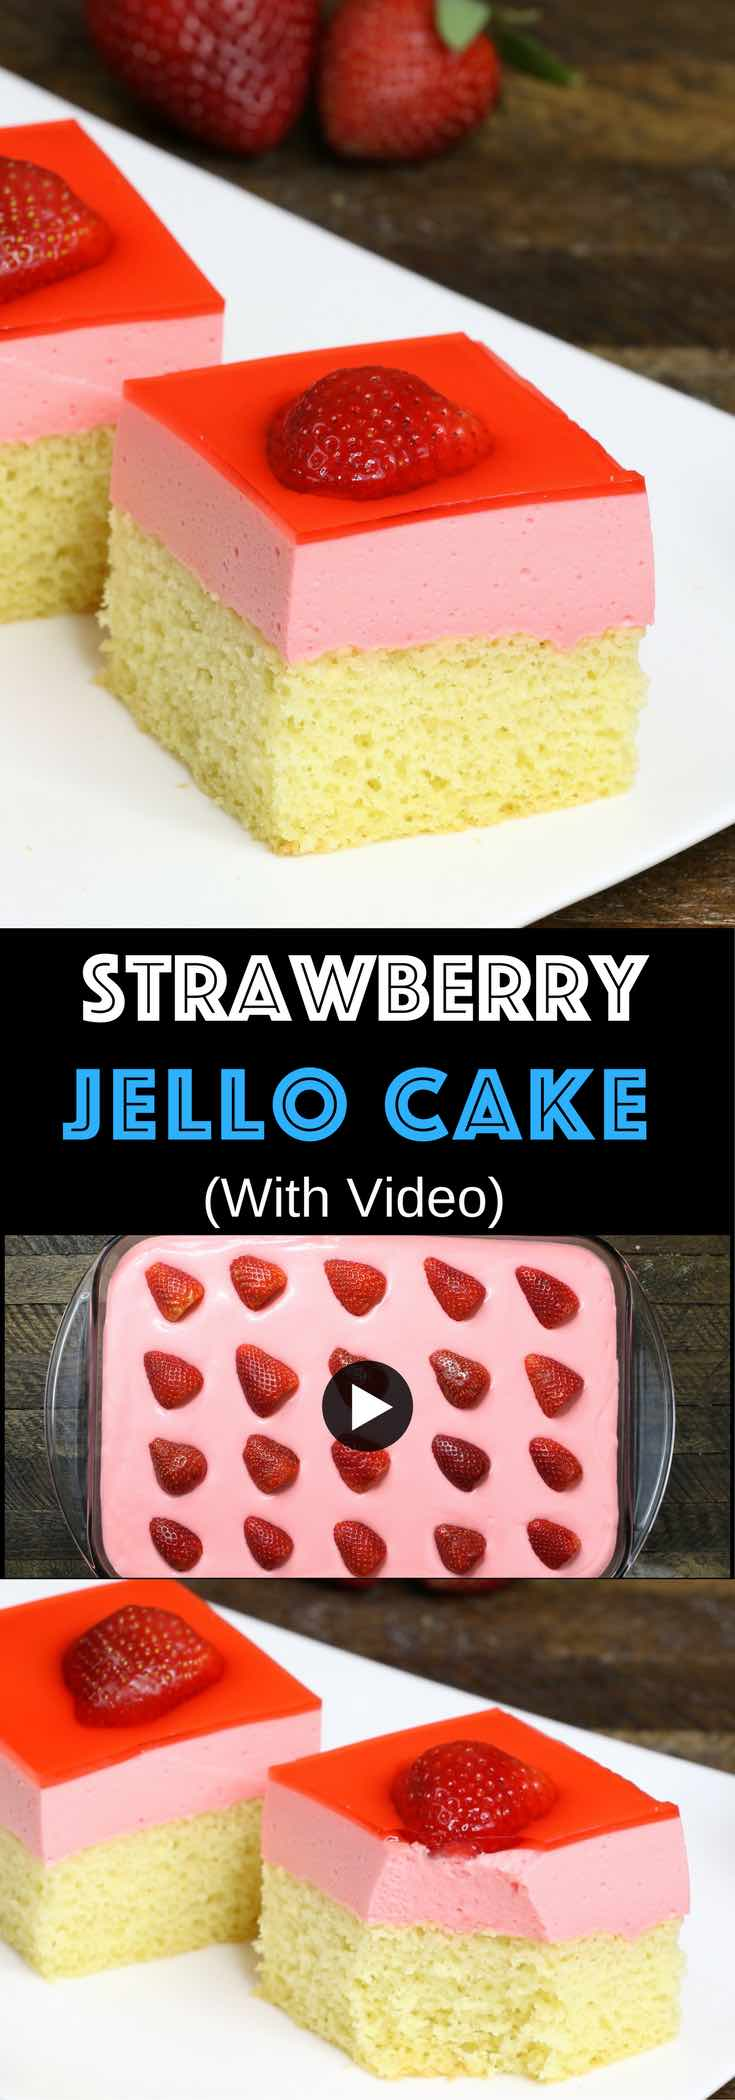 Easy Strawberry Jello Cake – A beautiful make-ahead dessert with 3 layers for a party! Smooth and creamy Jello fillings between yellow cake and bright red strawberry layers. So Good! Great for holiday and birthday parties. Easy recipe, party desserts. Vegetarian. Video recipe. | Tipbuzz.com